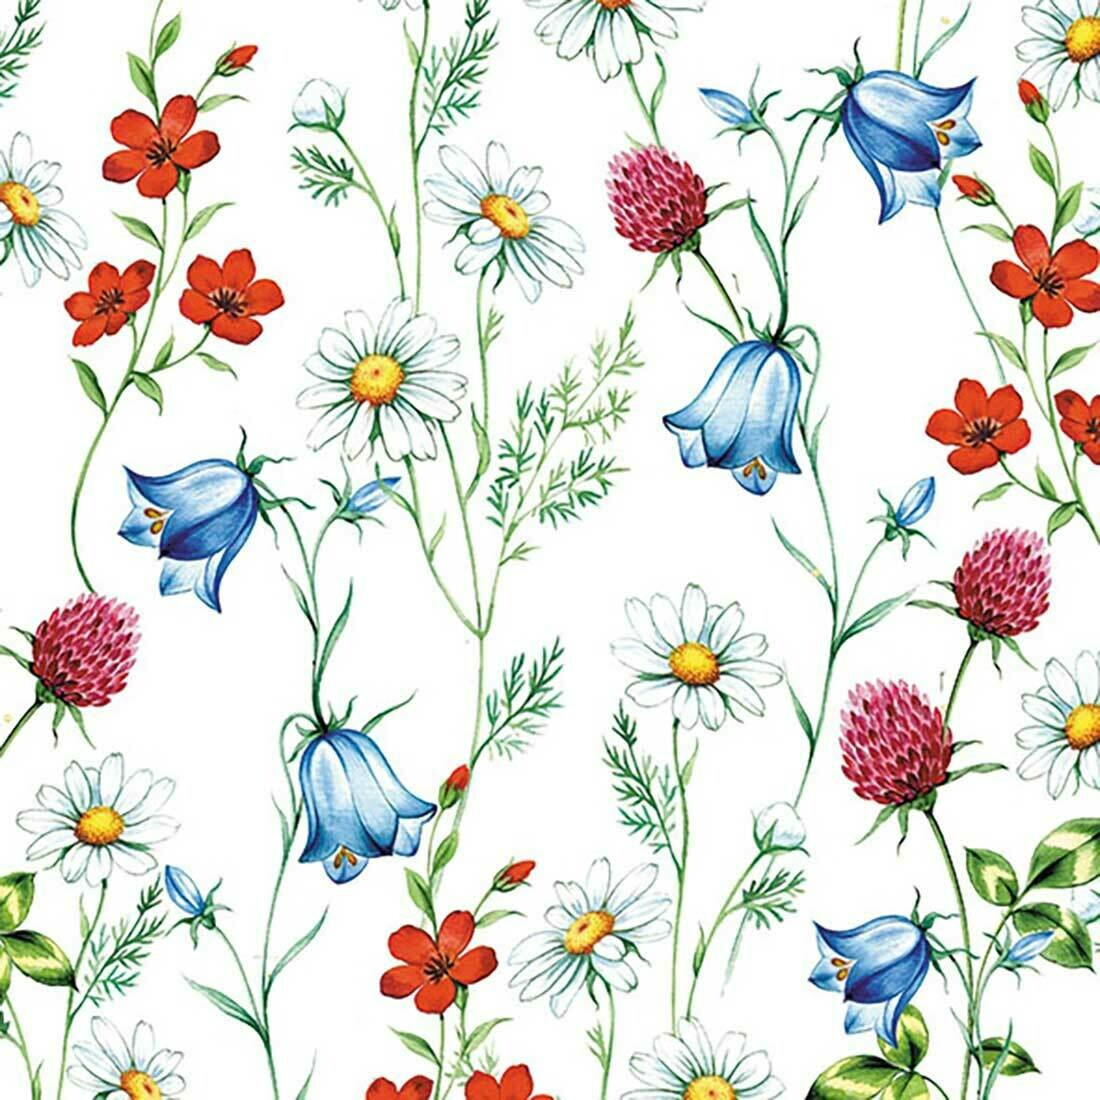 Decoupage Paper Napkins - Floral - Mixed Wild Flowers 13x13 (1 Sheet)